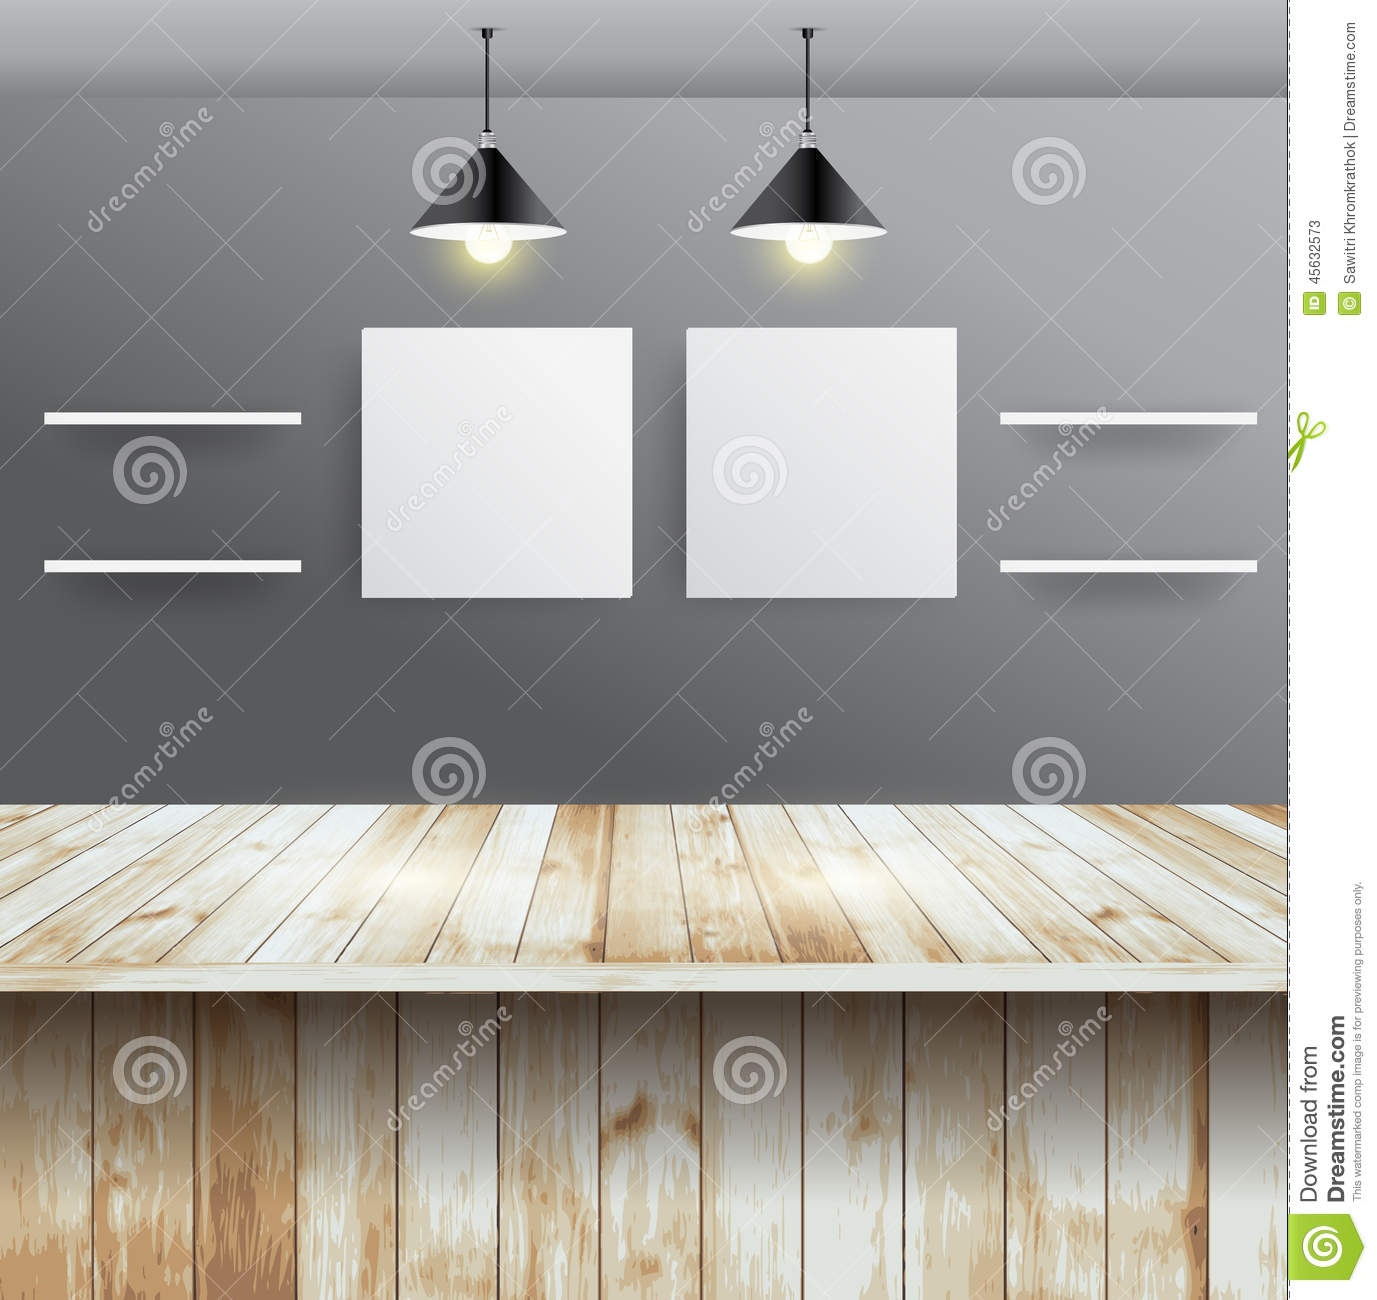 Interior wooden shelves free vector - Vector Wood Table With Wall Room Interior Design Stock Photos